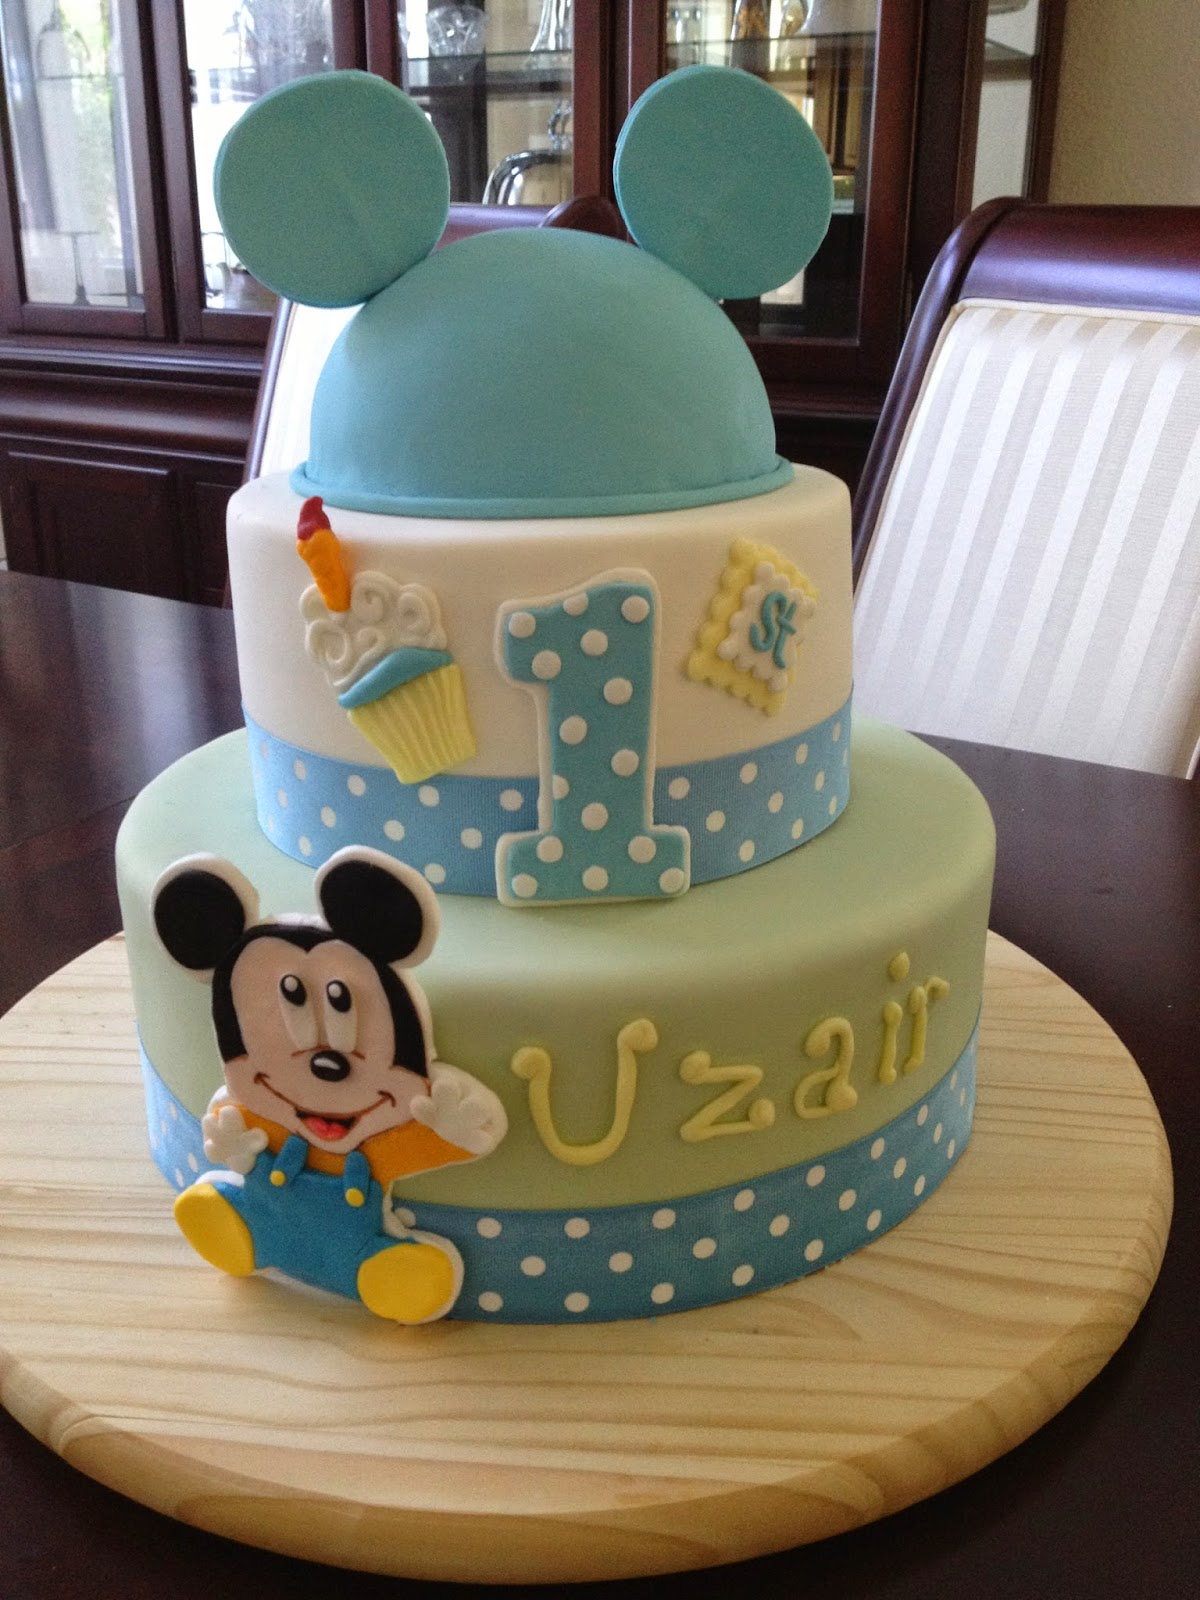 Baby Mickey Mouse Edible Cake Decorations Similiar Baby Mickey Mouse Cake Keywords